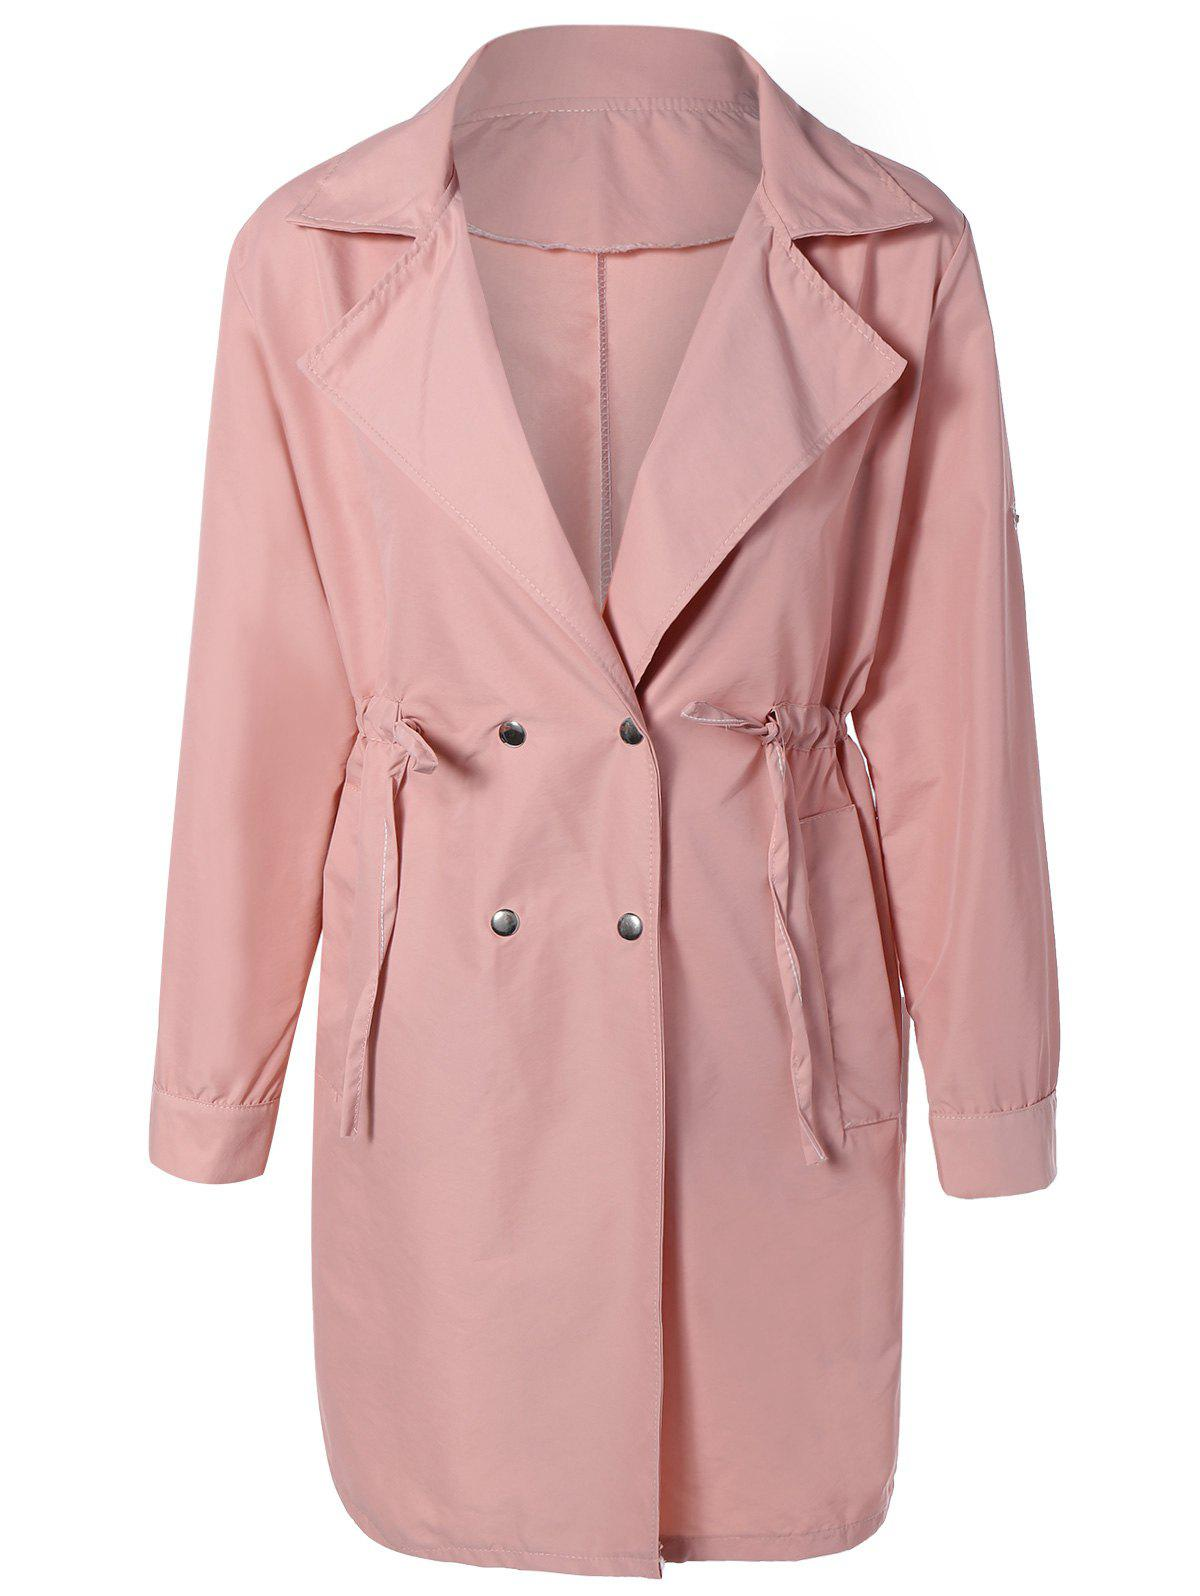 Drawstring Waist Double Breasted Long Trench Coat pink trench coat with drawstring waist